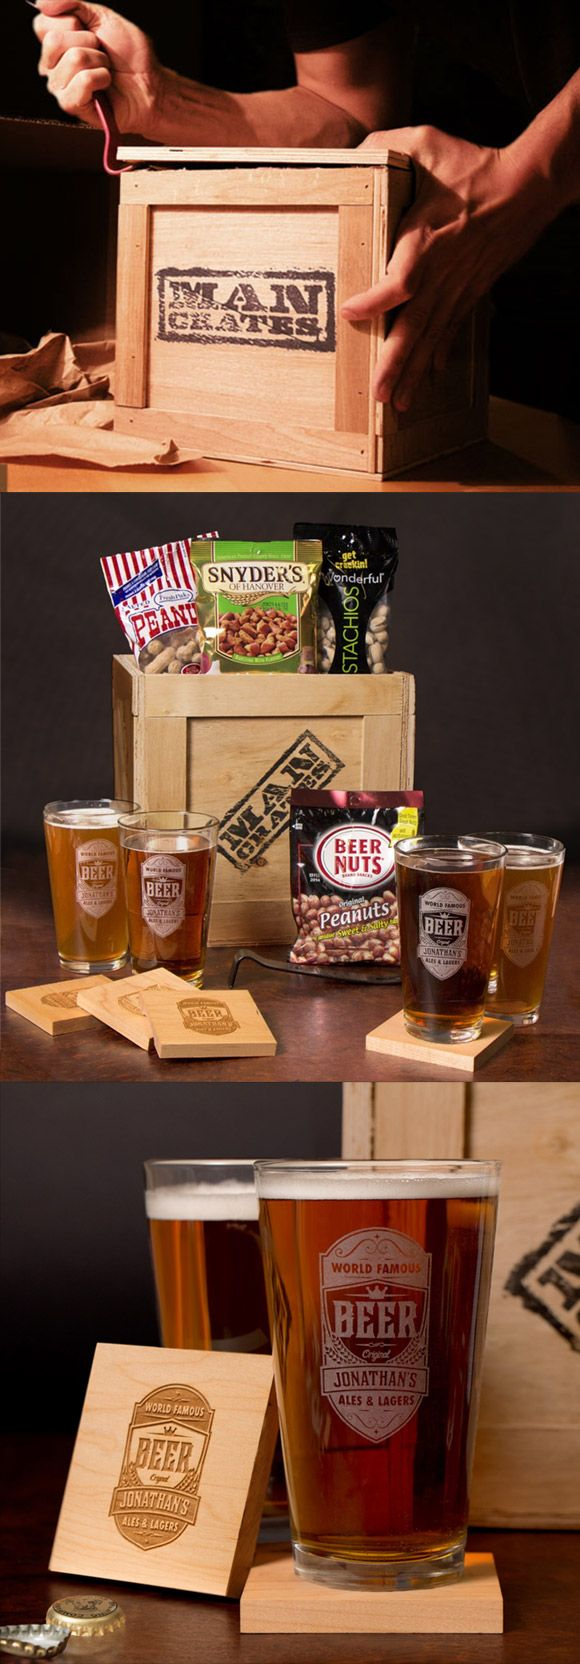 Saw these guys on the Today show this morning — awesome gifts for him this Valentine's Day. Personalized beer glasses! #ManCrates